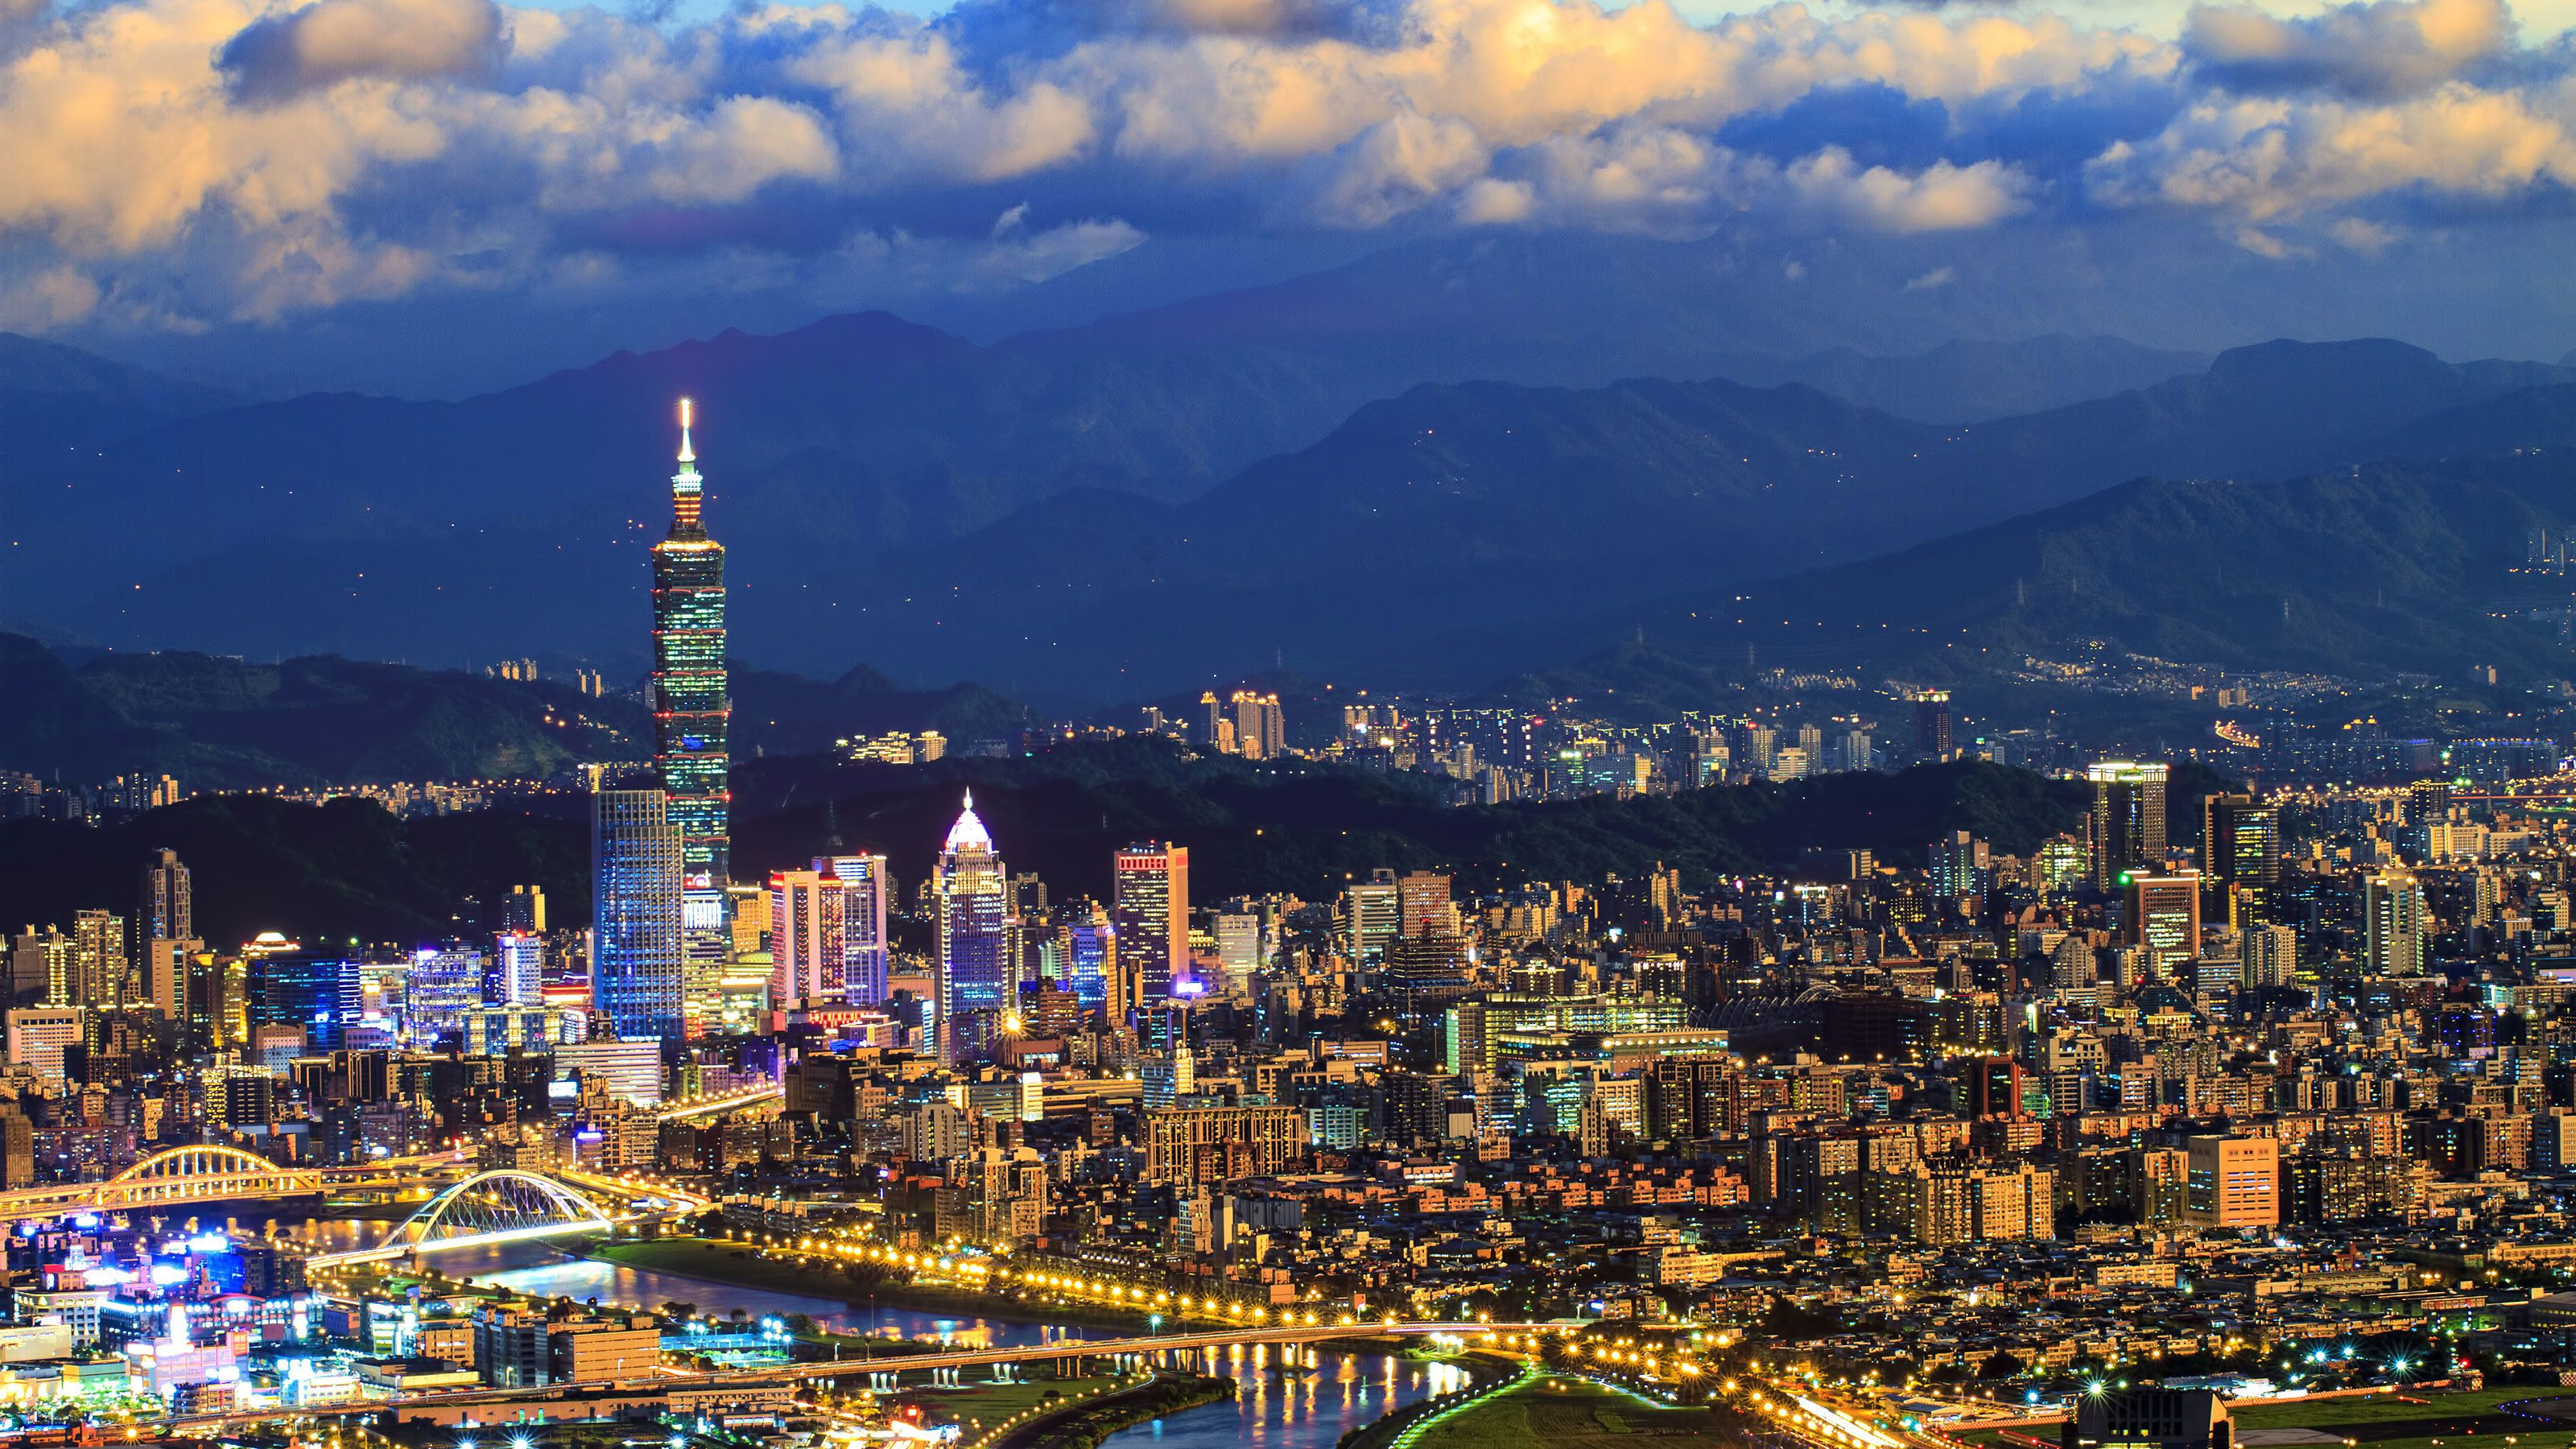 Another view of the city of Taipei at night